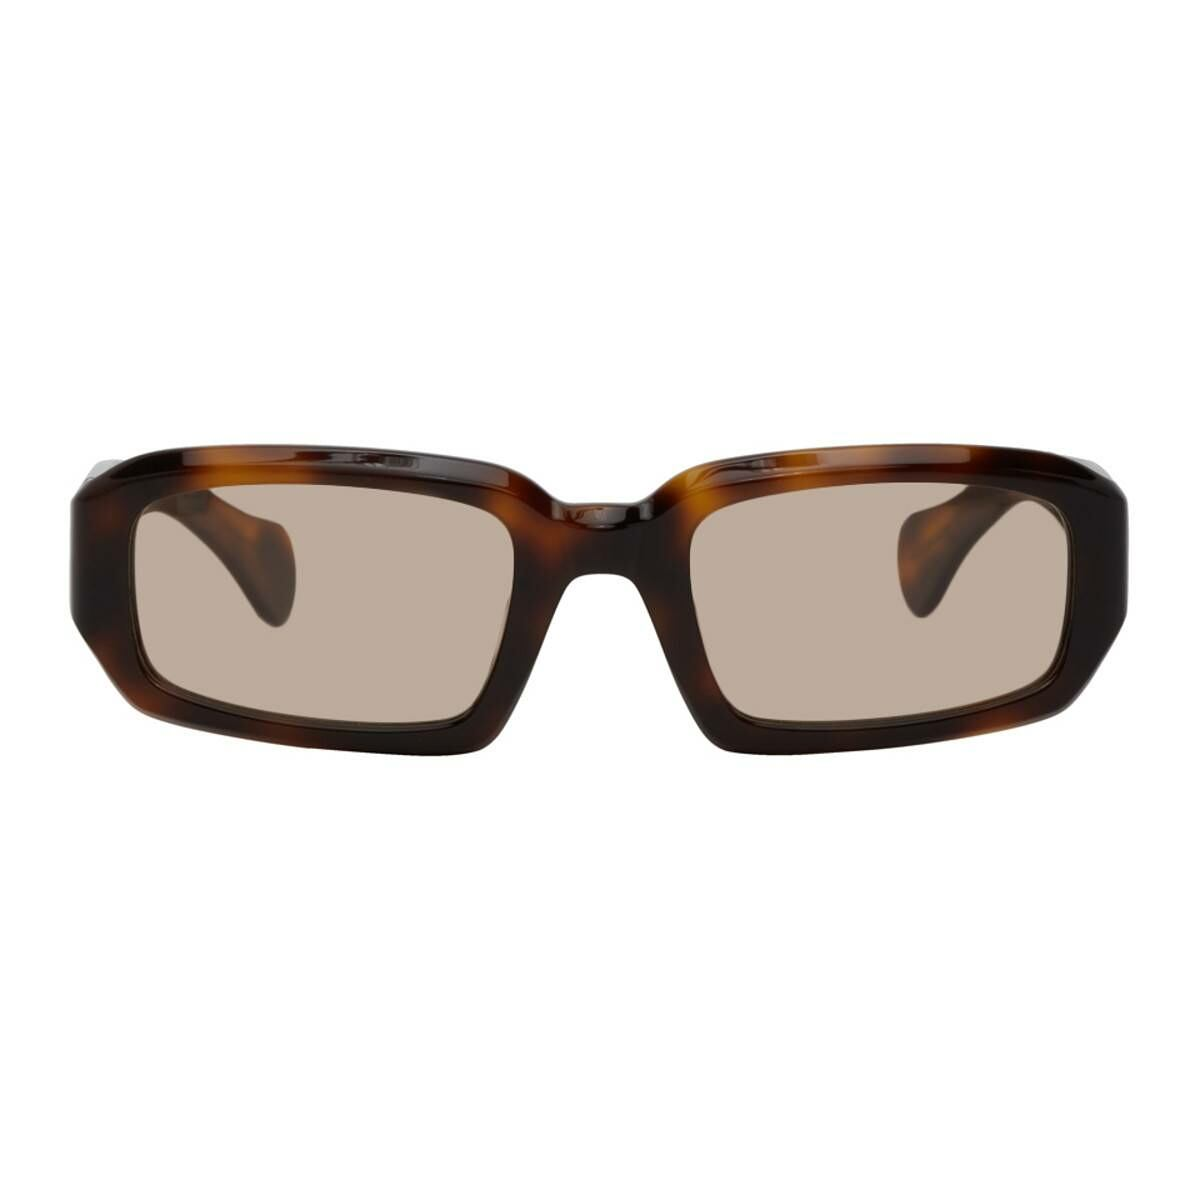 Port Tanger Tortoiseshell Mektoub Sunglasses Ssense USA MEN Men ACCESSORIES Mens SUNGLASSES